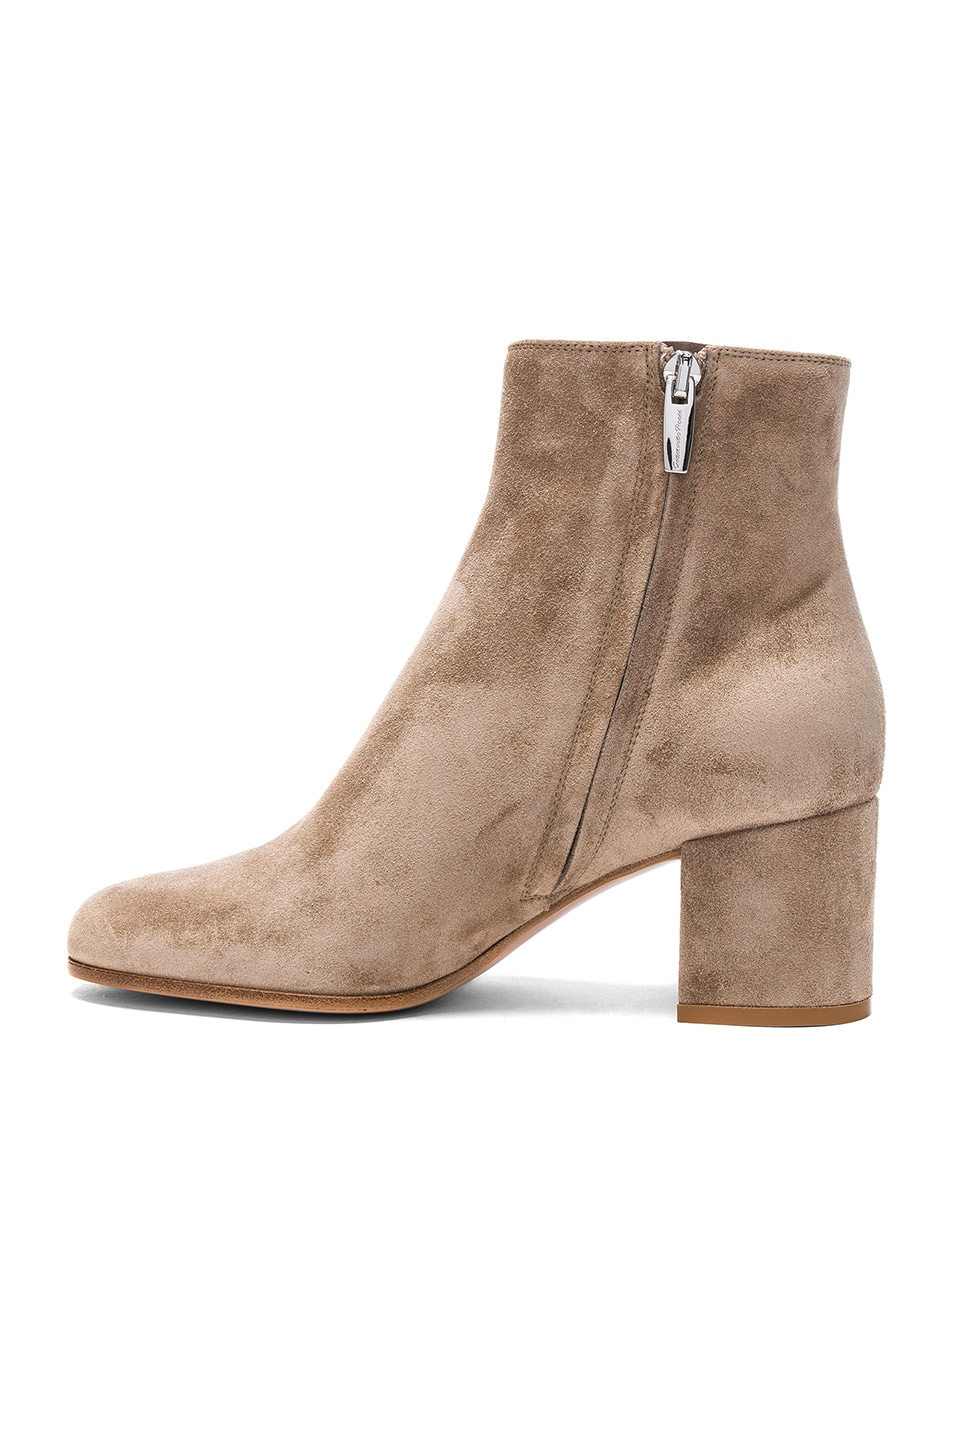 Gianvito Rossi Suede Margaux Booties in Neutrals.